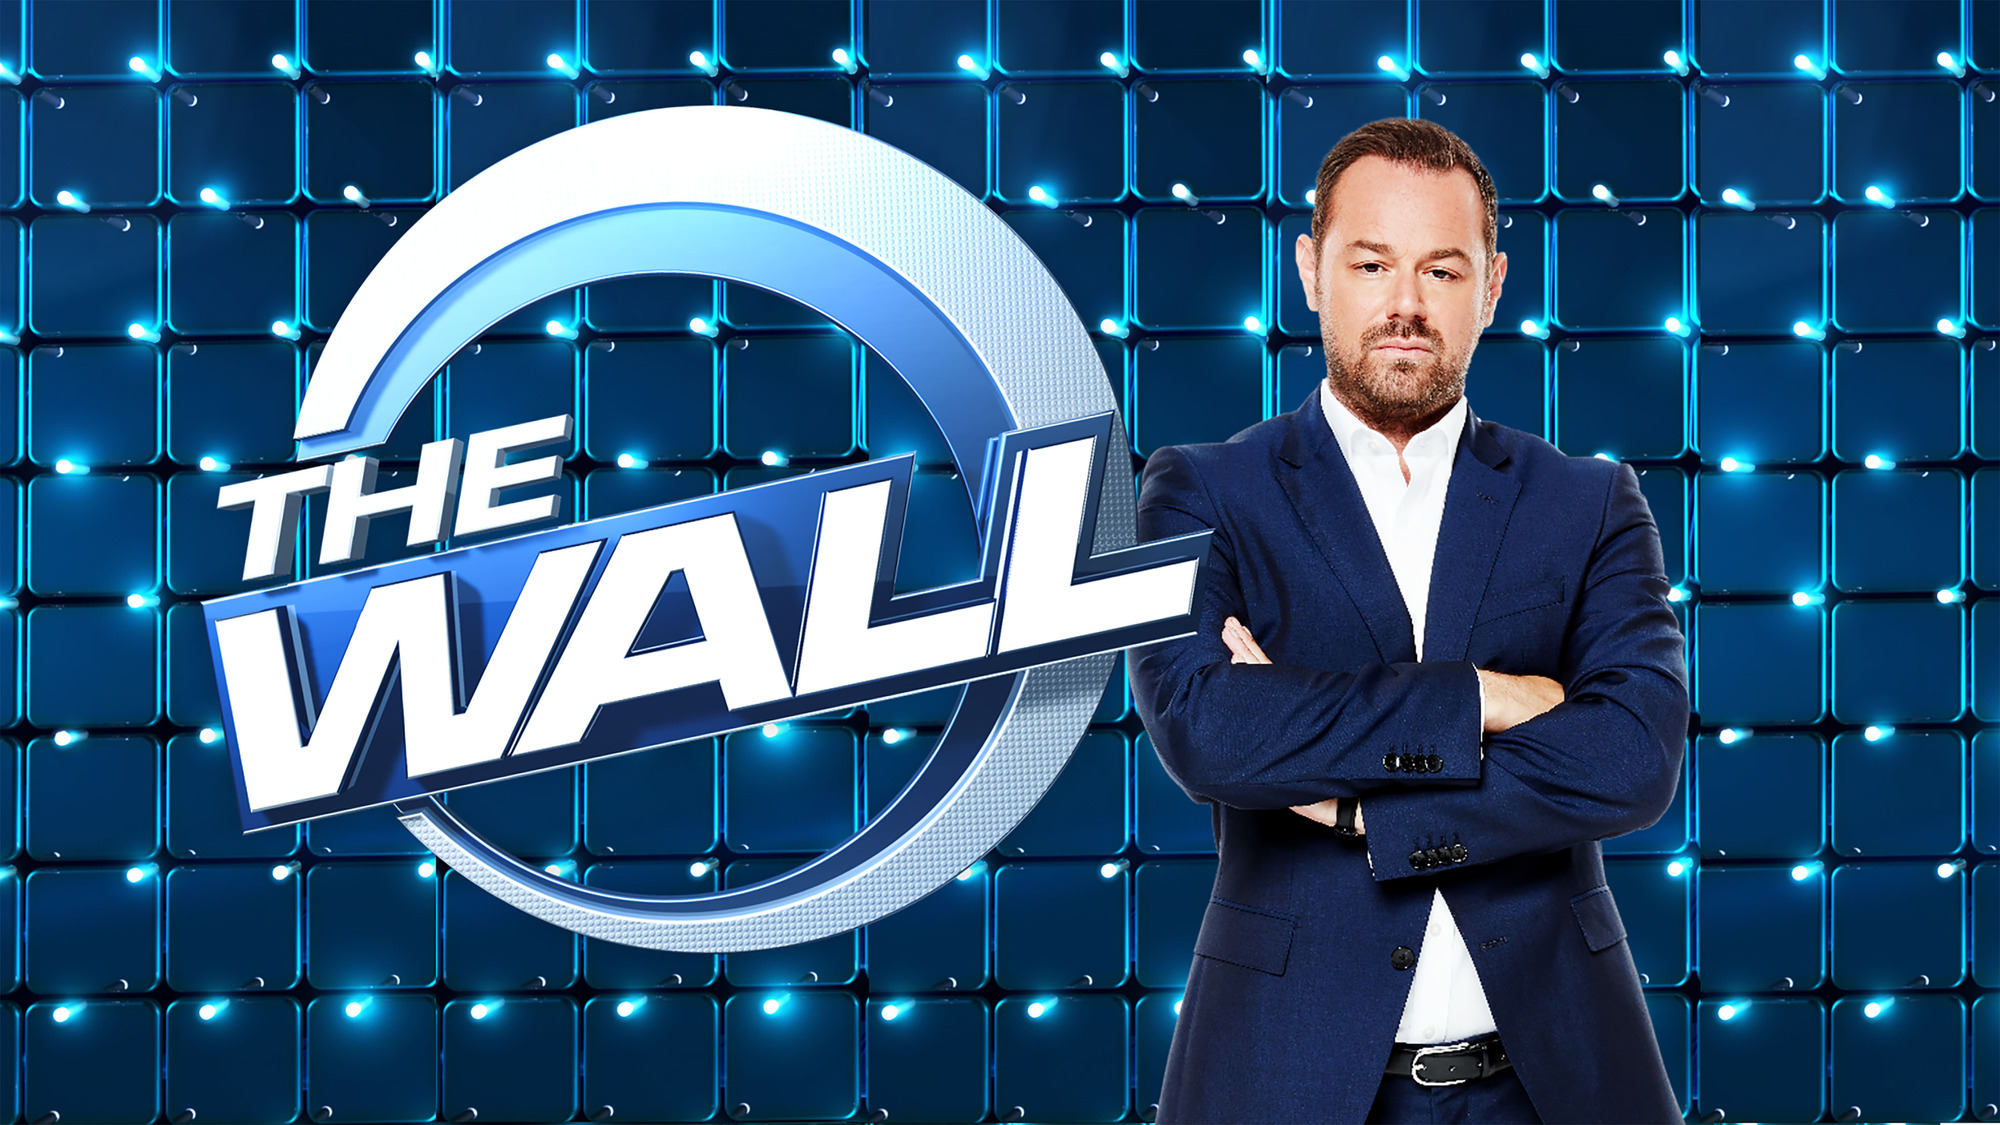 Danny Dyer's The Wall divides viewers like nothing else on earth